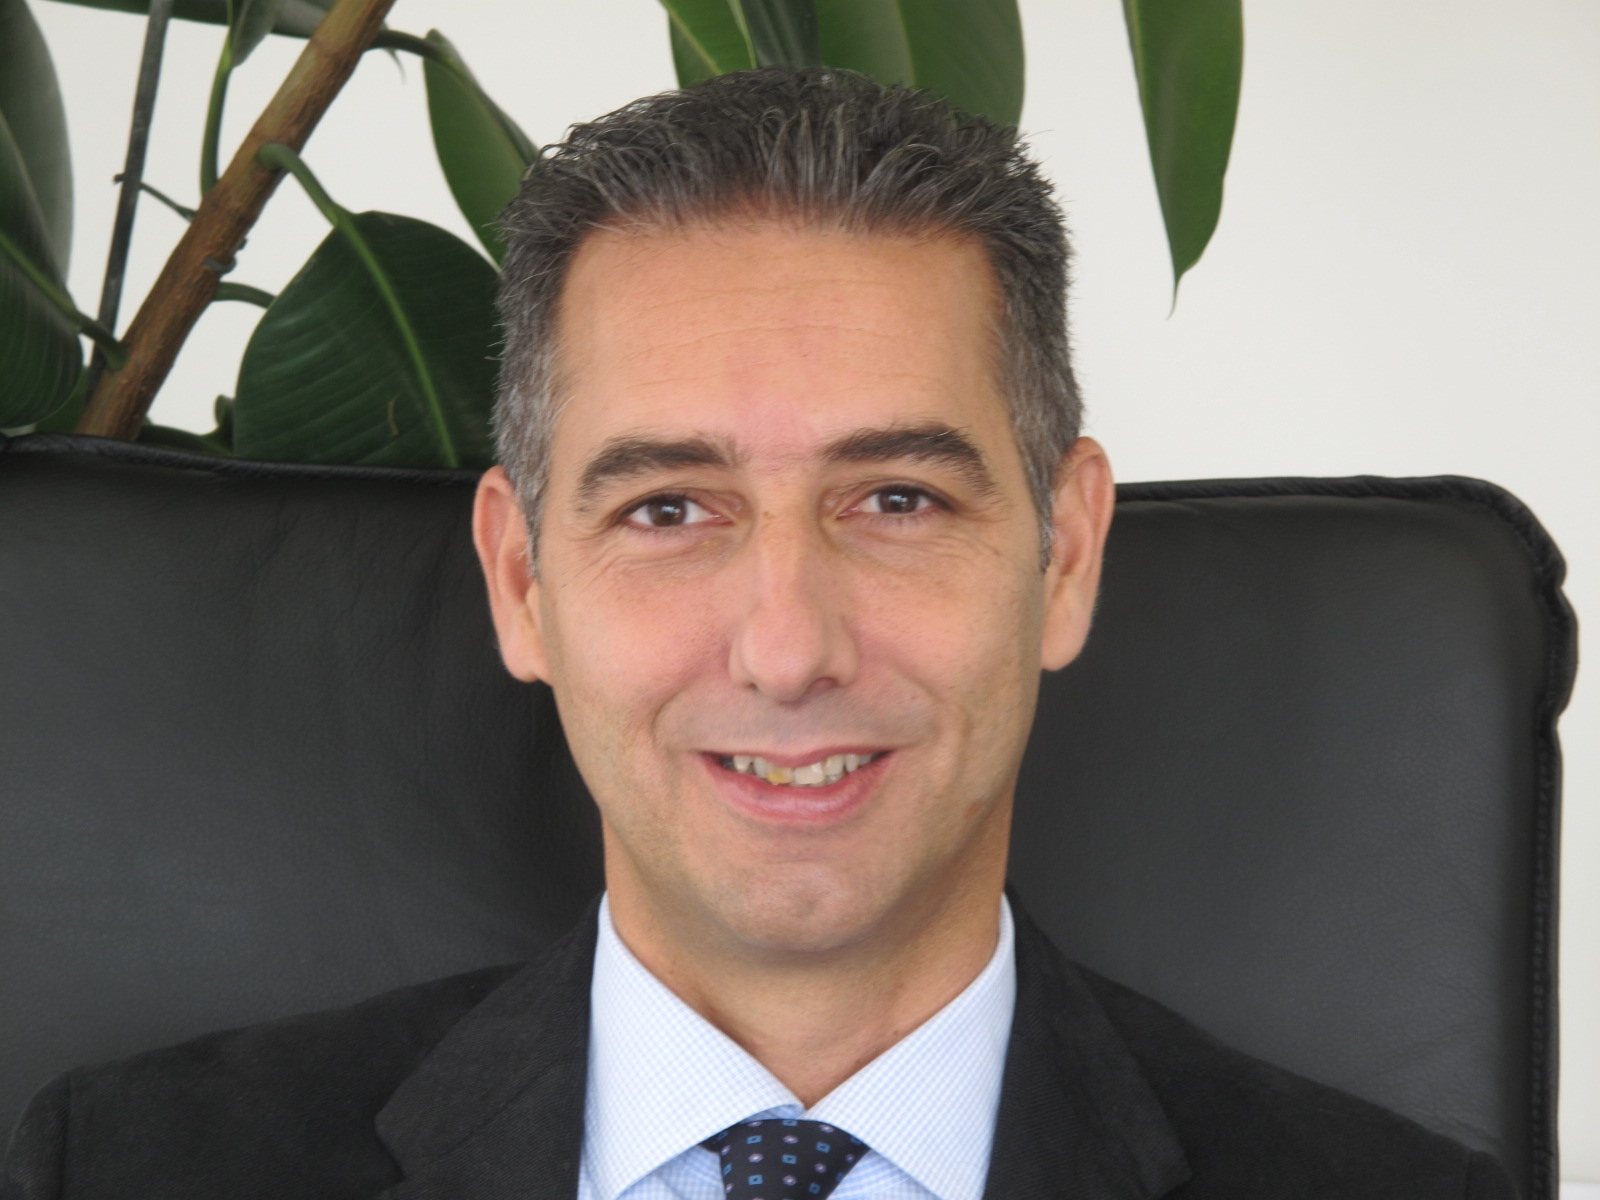 Stefano Bassi, Operations Director di Ediel Servizi